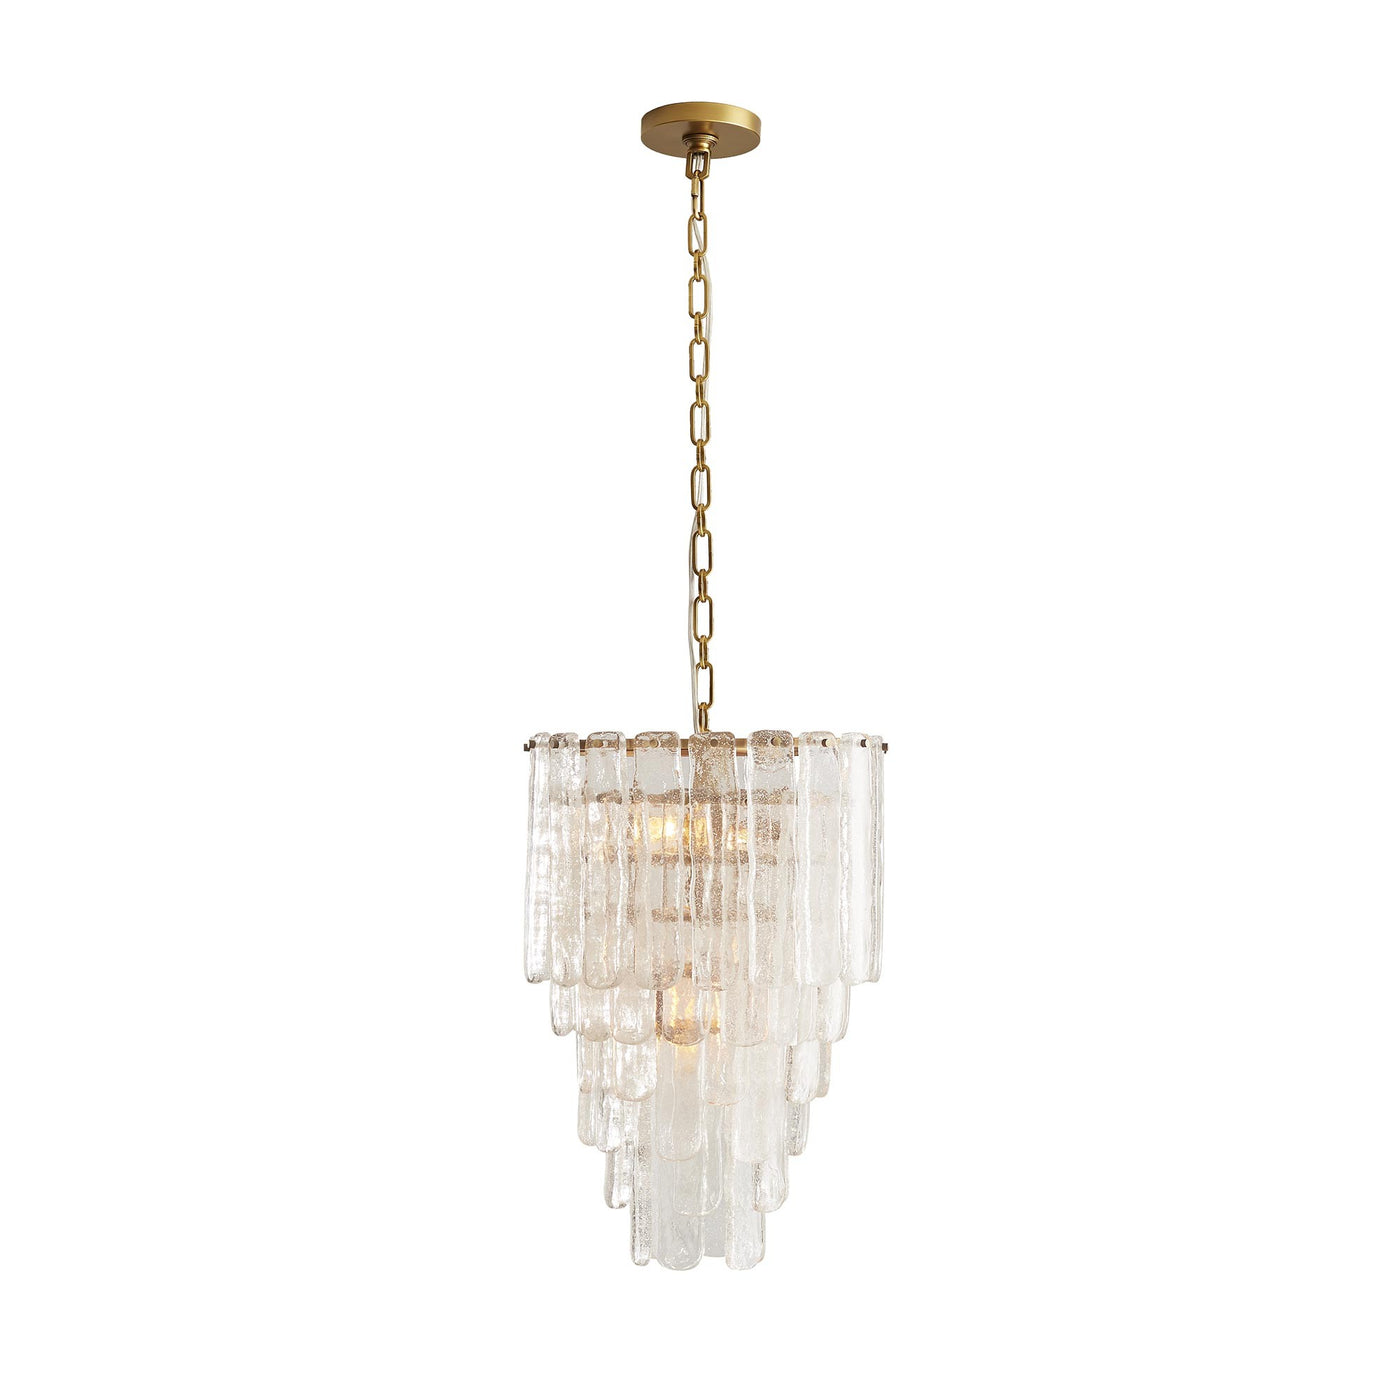 Arteriors Home Larie Chandelier Seeded Glass pendant